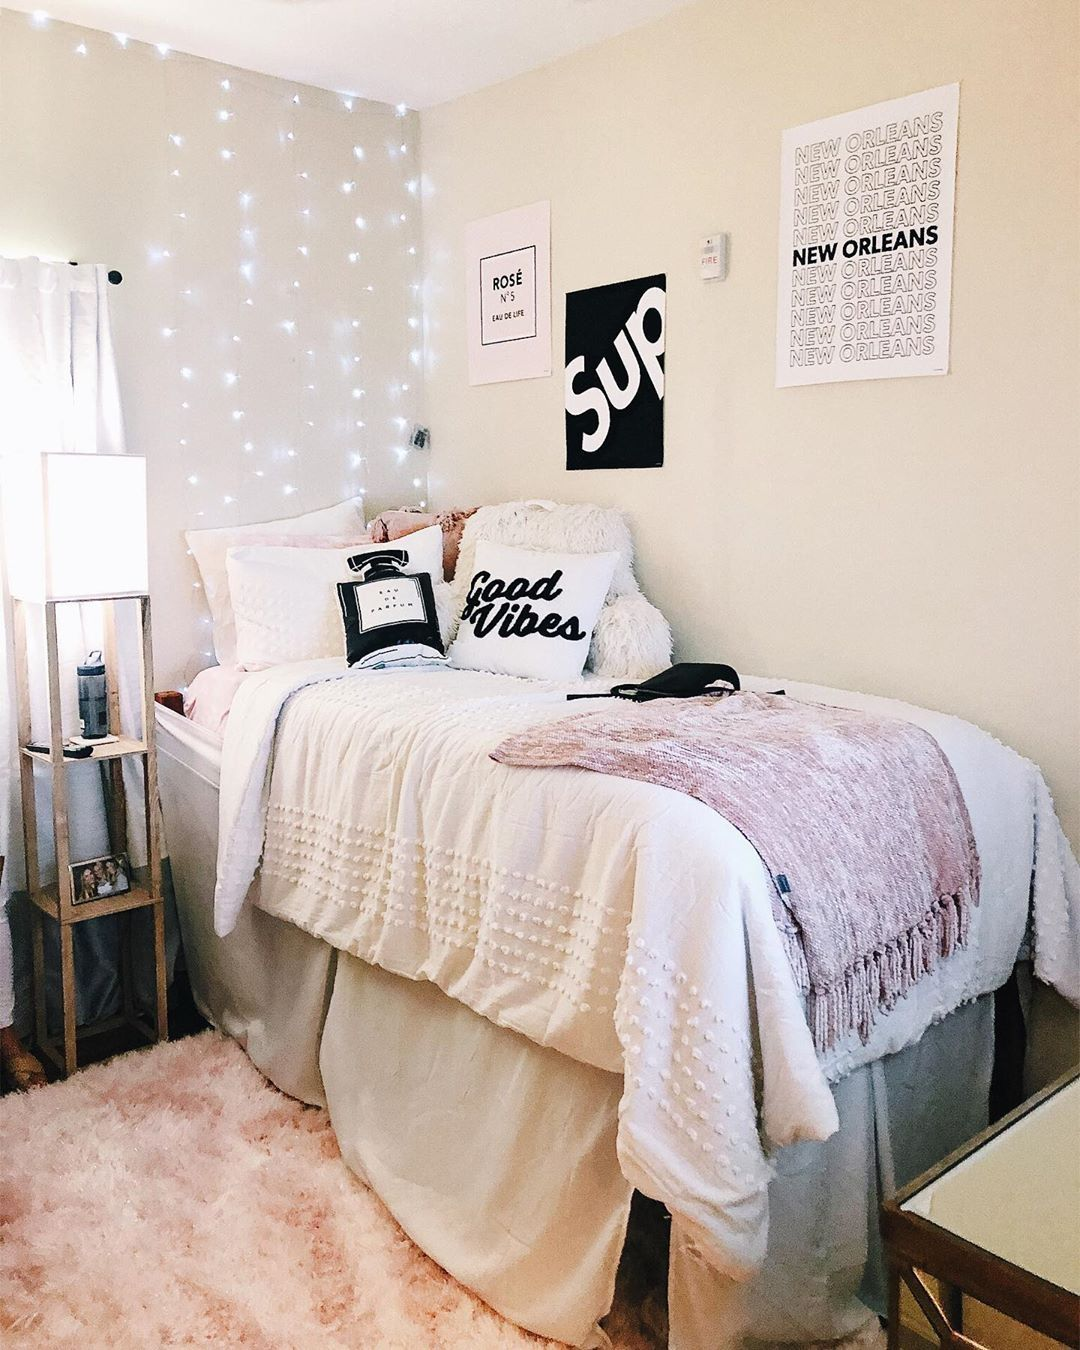 How To Style Your Room With Minimalistic Posters Dorm Room Designs Pink Dorm Rooms Girls Dorm Room